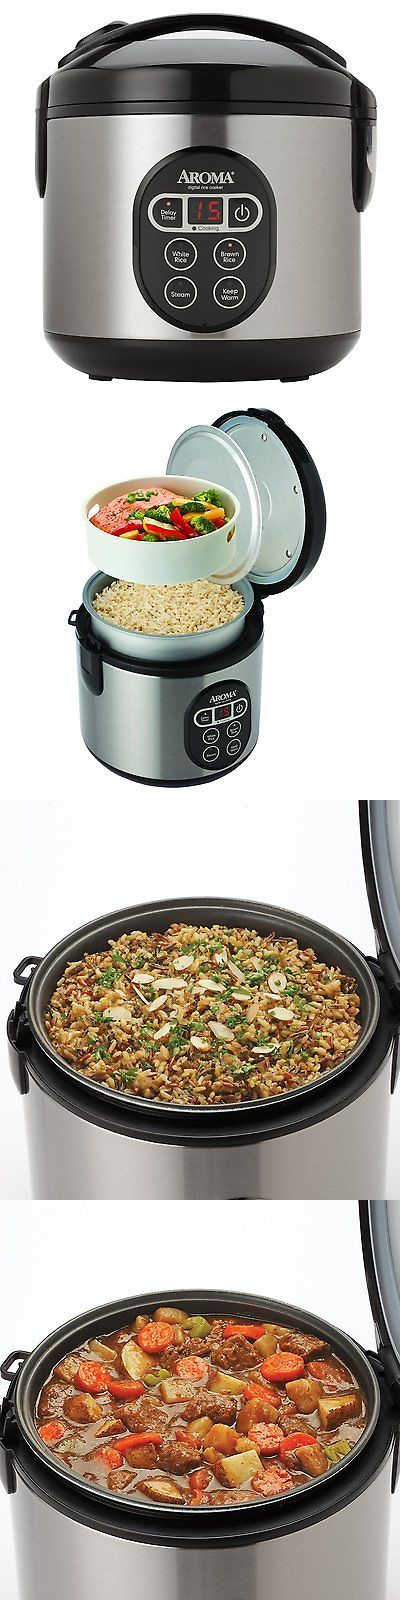 appliances: Aroma Digital Rice Cooker And Food Steamer, 4-Cup Uncooked, 8-Cup Cooked -> BUY IT NOW ONLY: $33.16 on eBay!